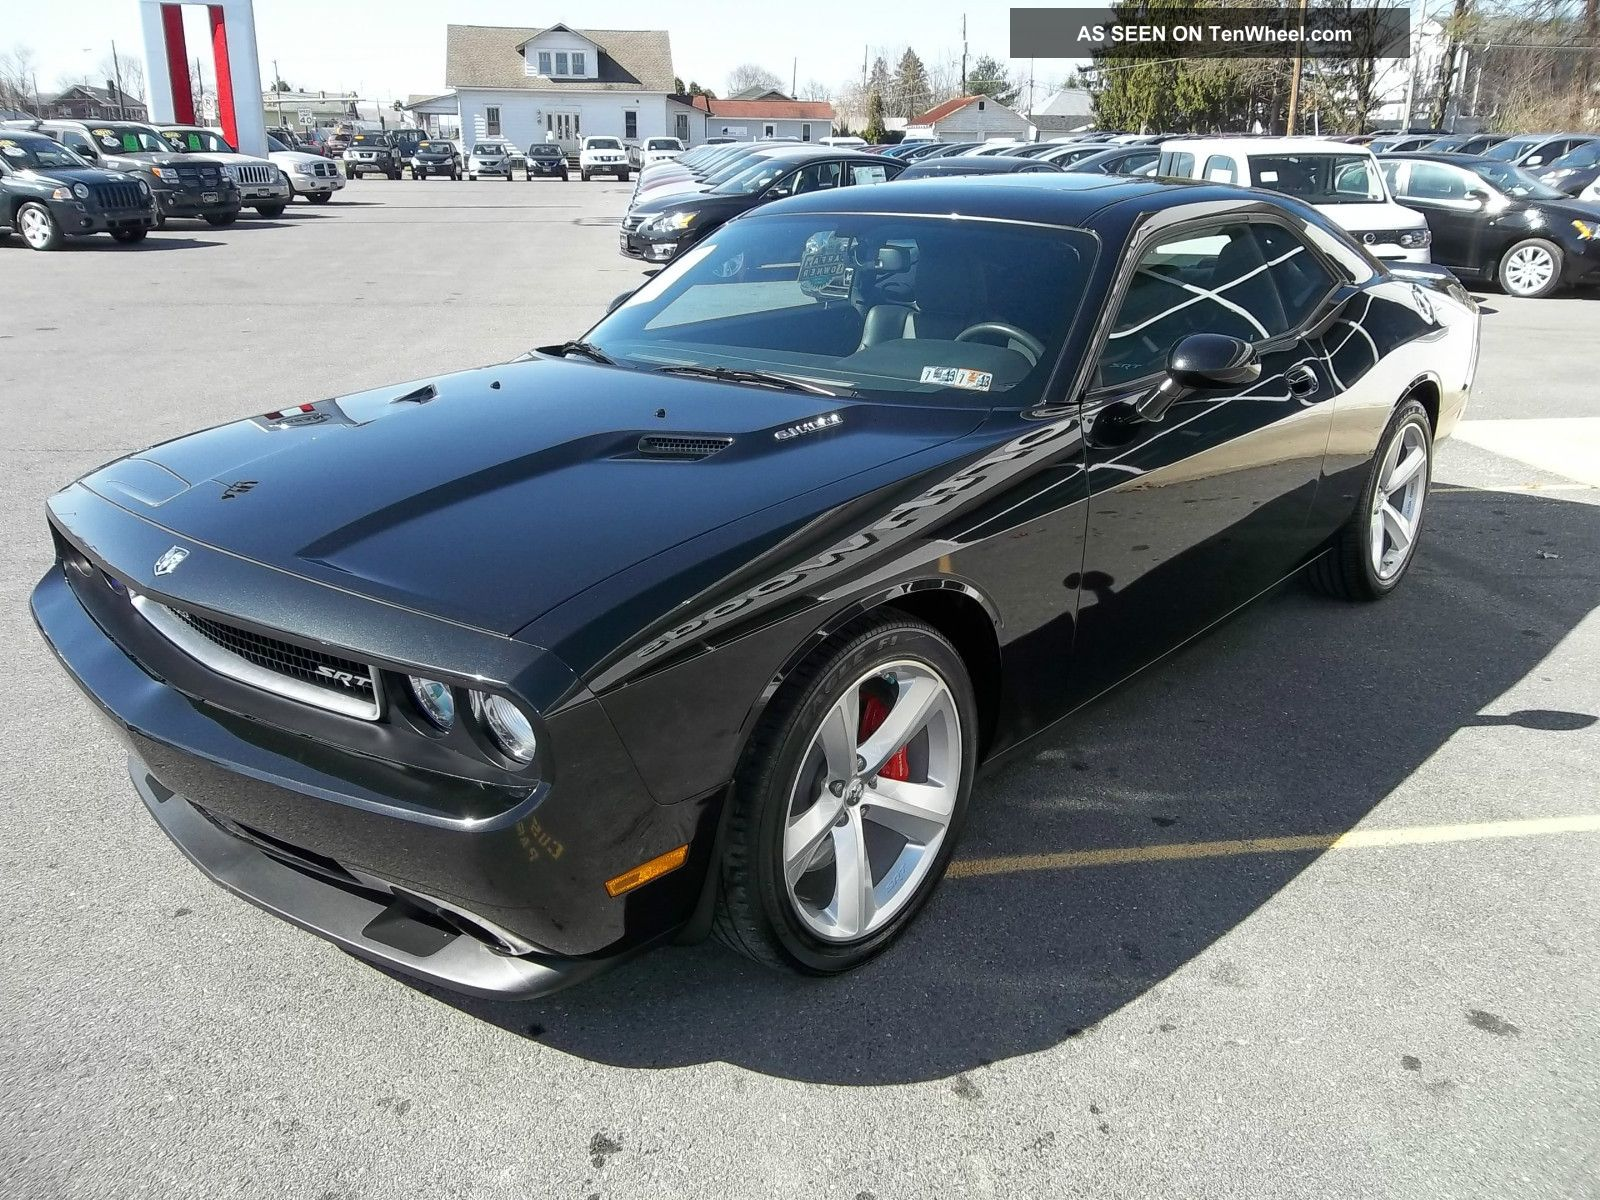 2010 dodge challenger srt8 coupe 2 door 6 1l. Black Bedroom Furniture Sets. Home Design Ideas